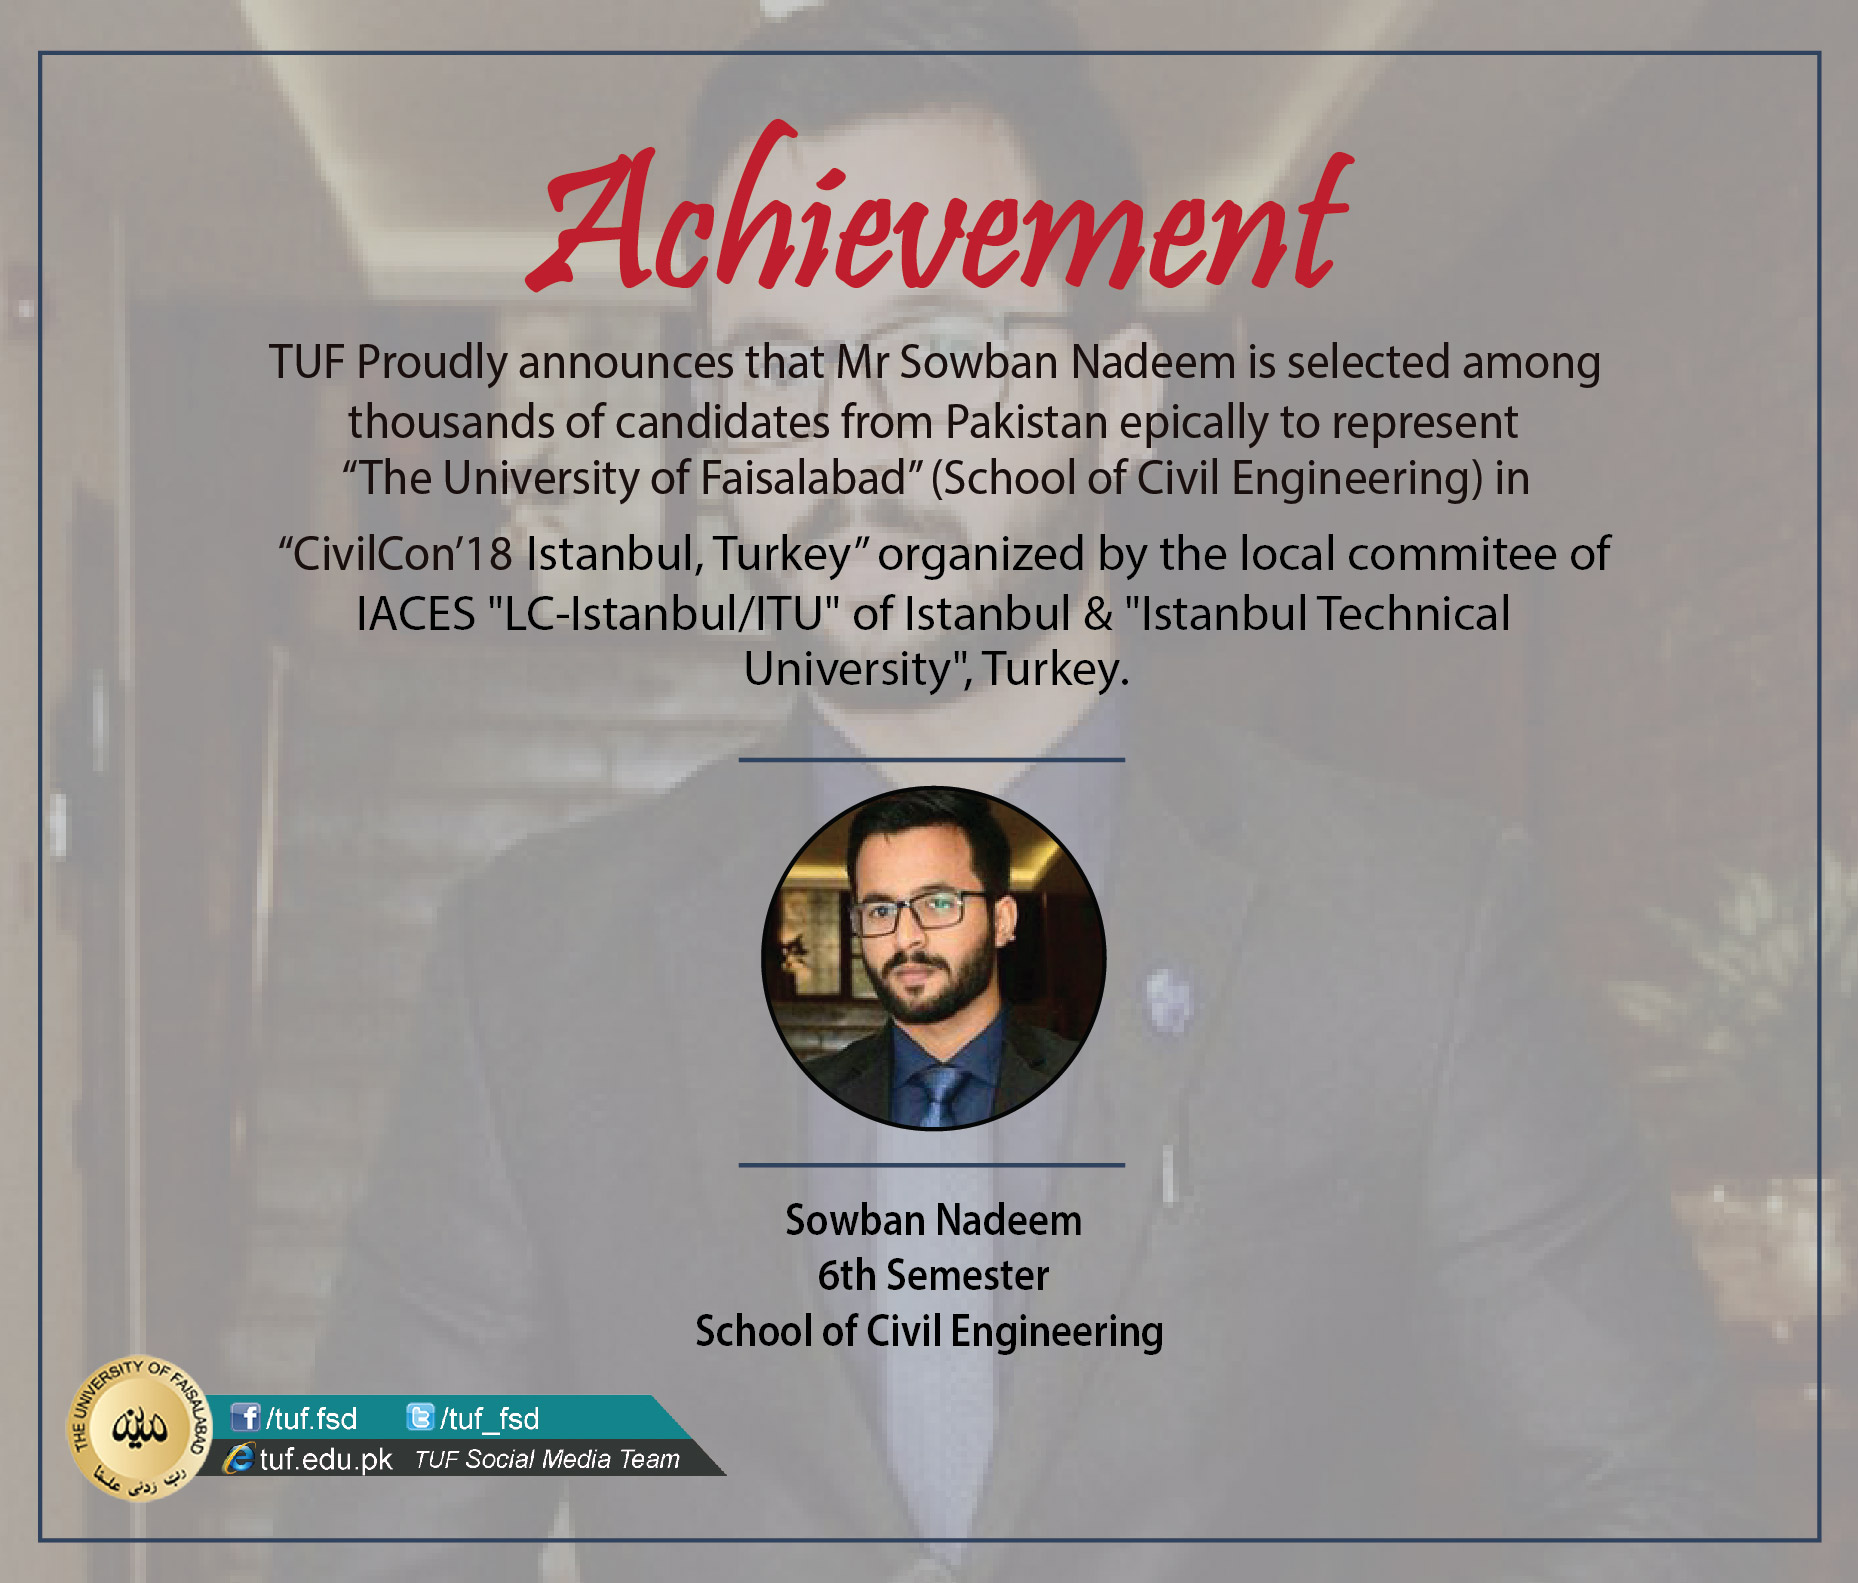 """TUF student Mr Sowban Nadeem is selected in """"CivilCon'18 Istanbul, Turkey"""" to represent The University of Faisalabad"""